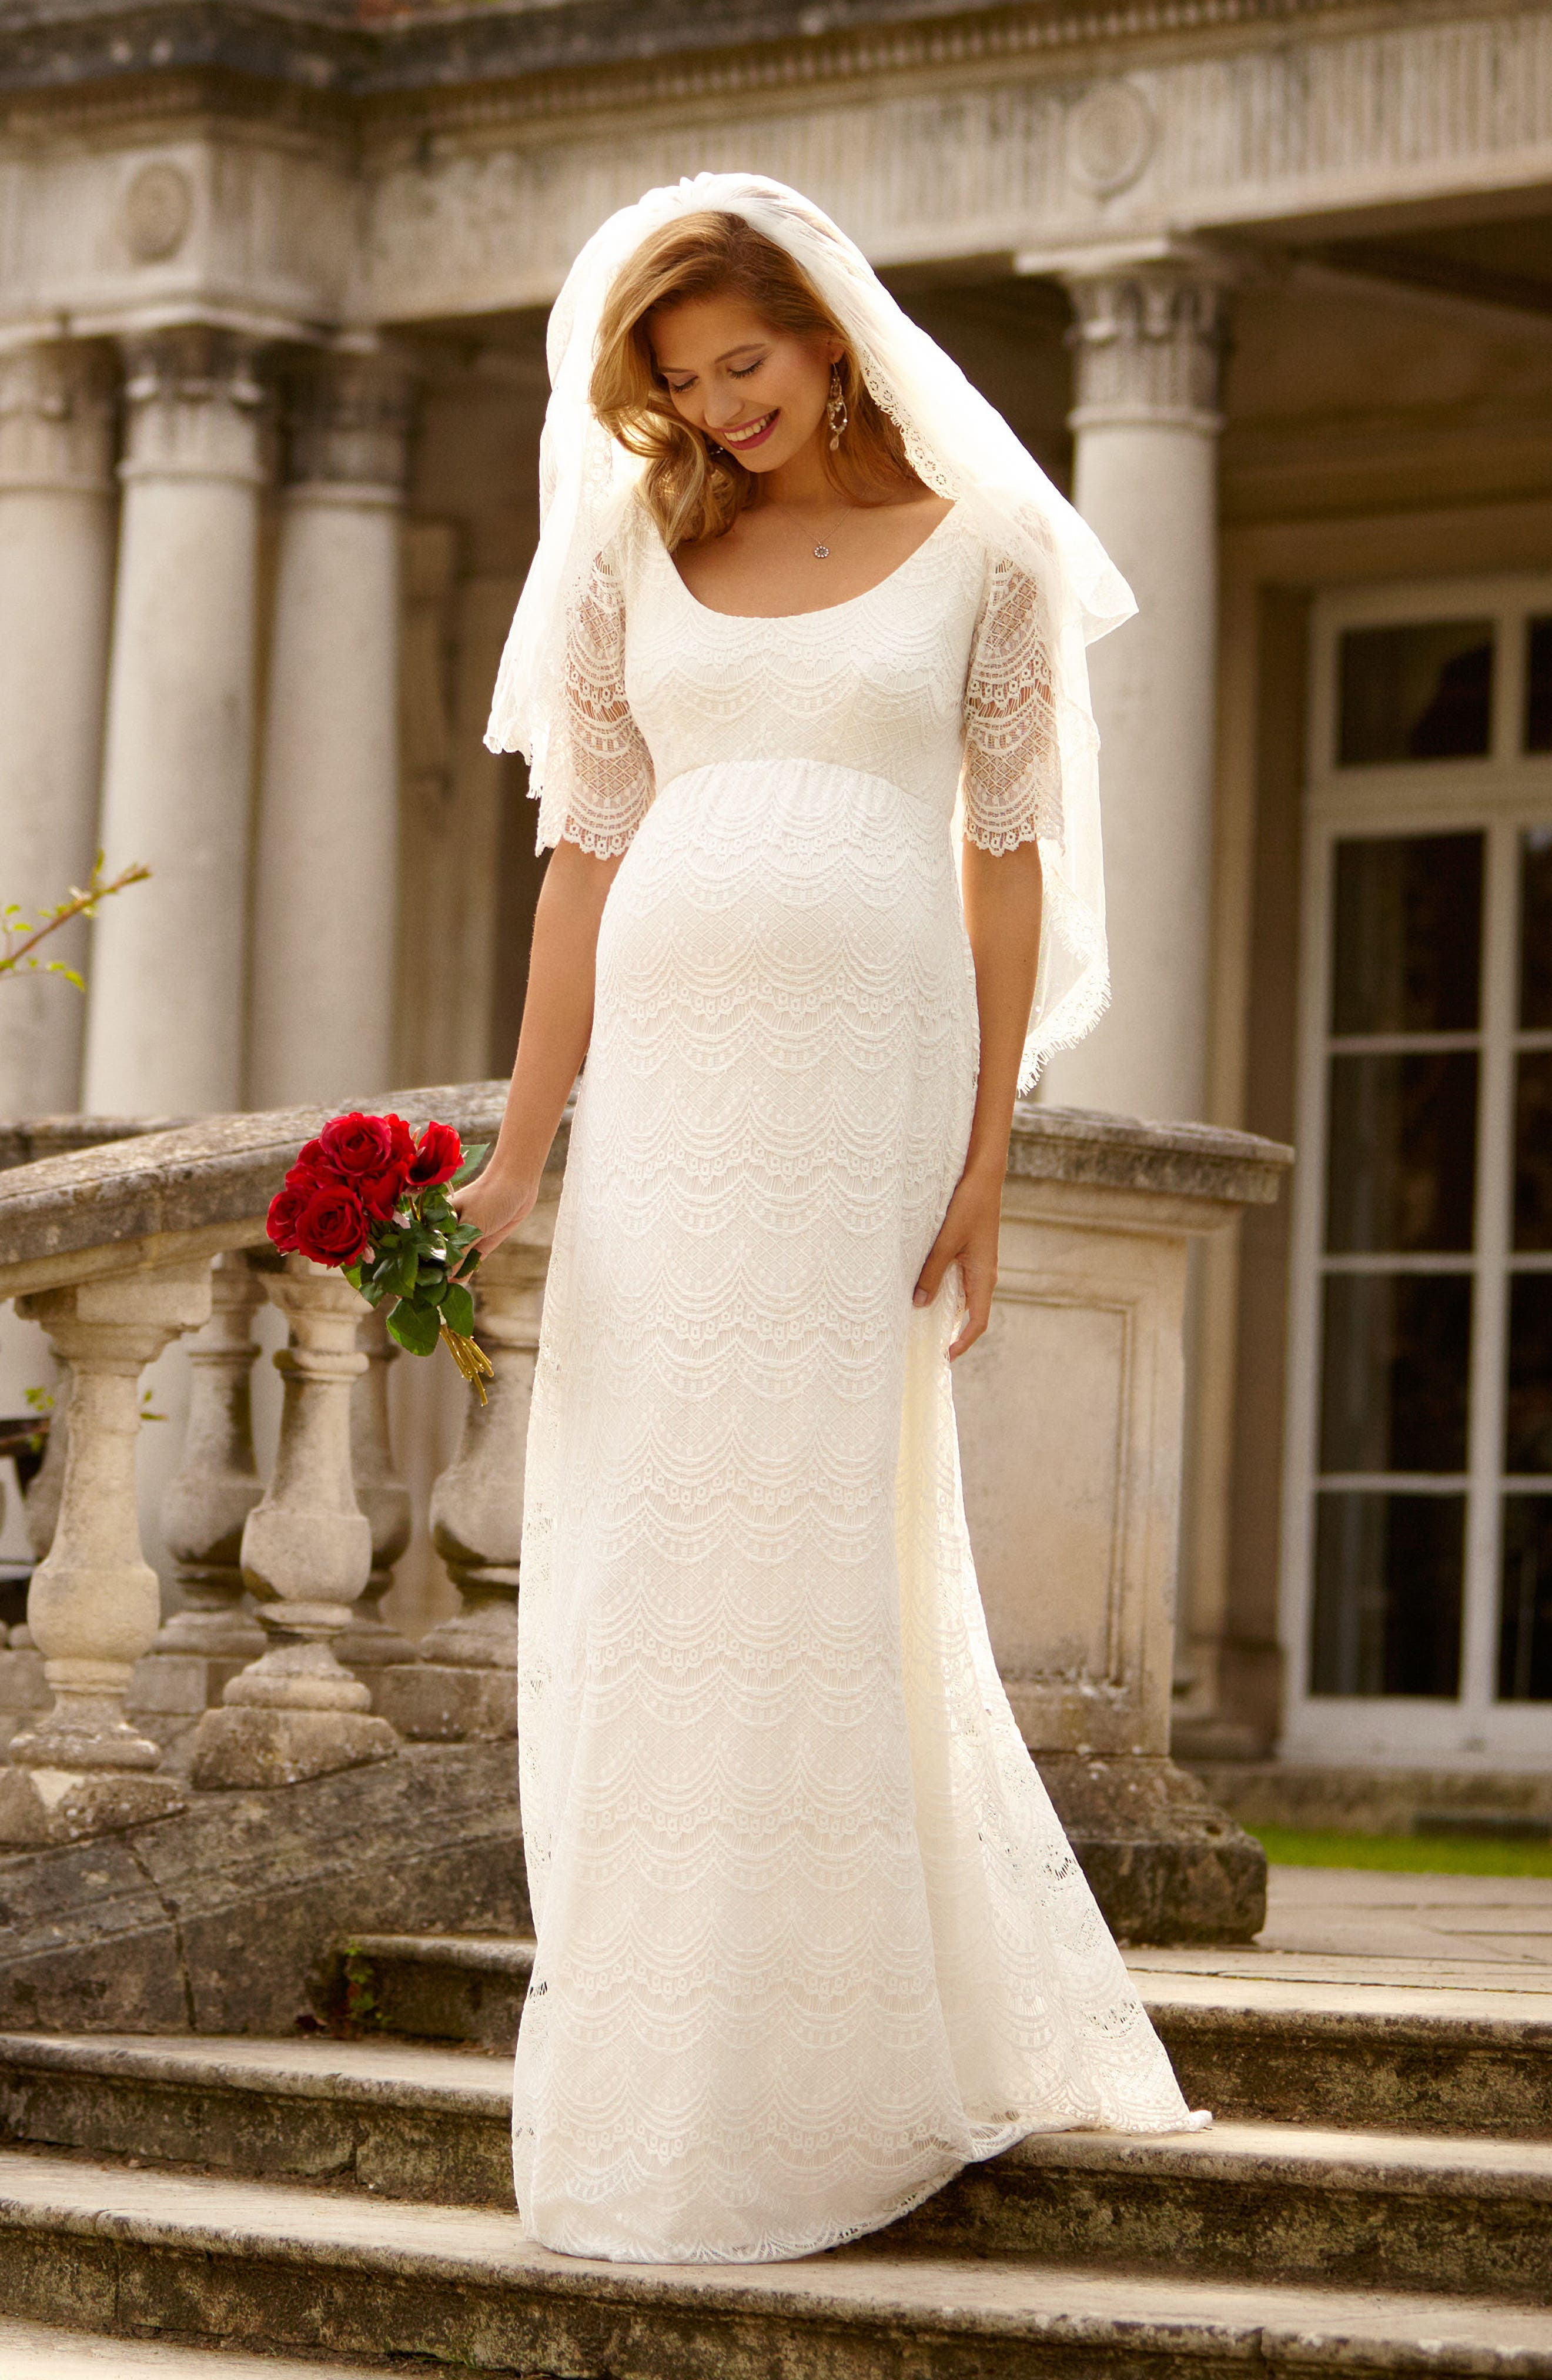 Verona Maternity Gown,                             Alternate thumbnail 5, color,                             BRIGHT IVORY